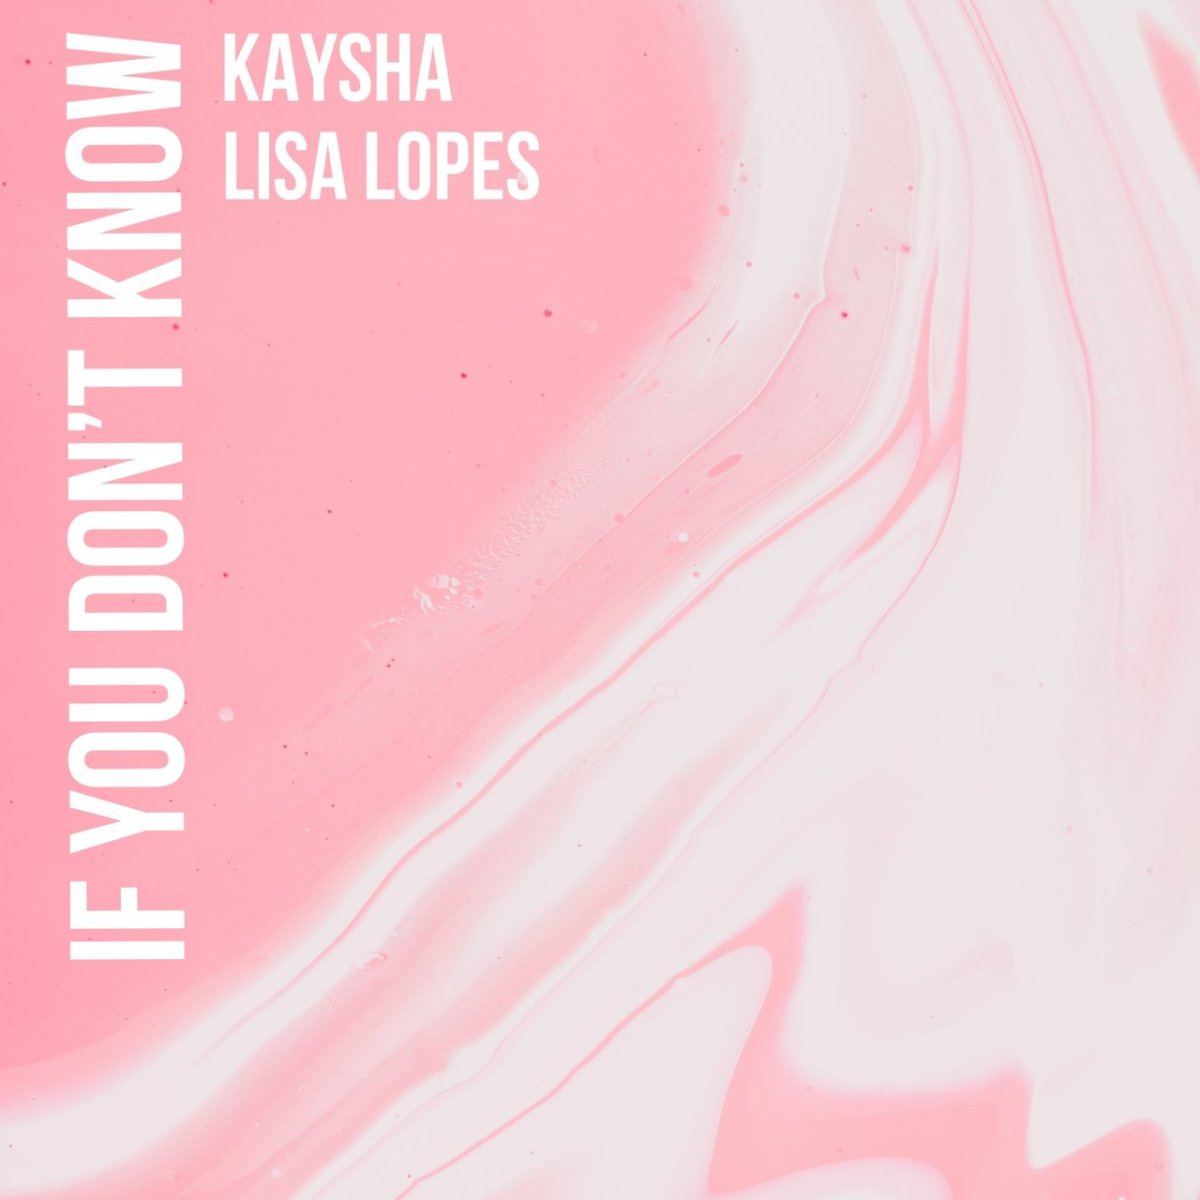 Kaysha - If You Don't Know (ft. Lisa Lopes) (Cover)